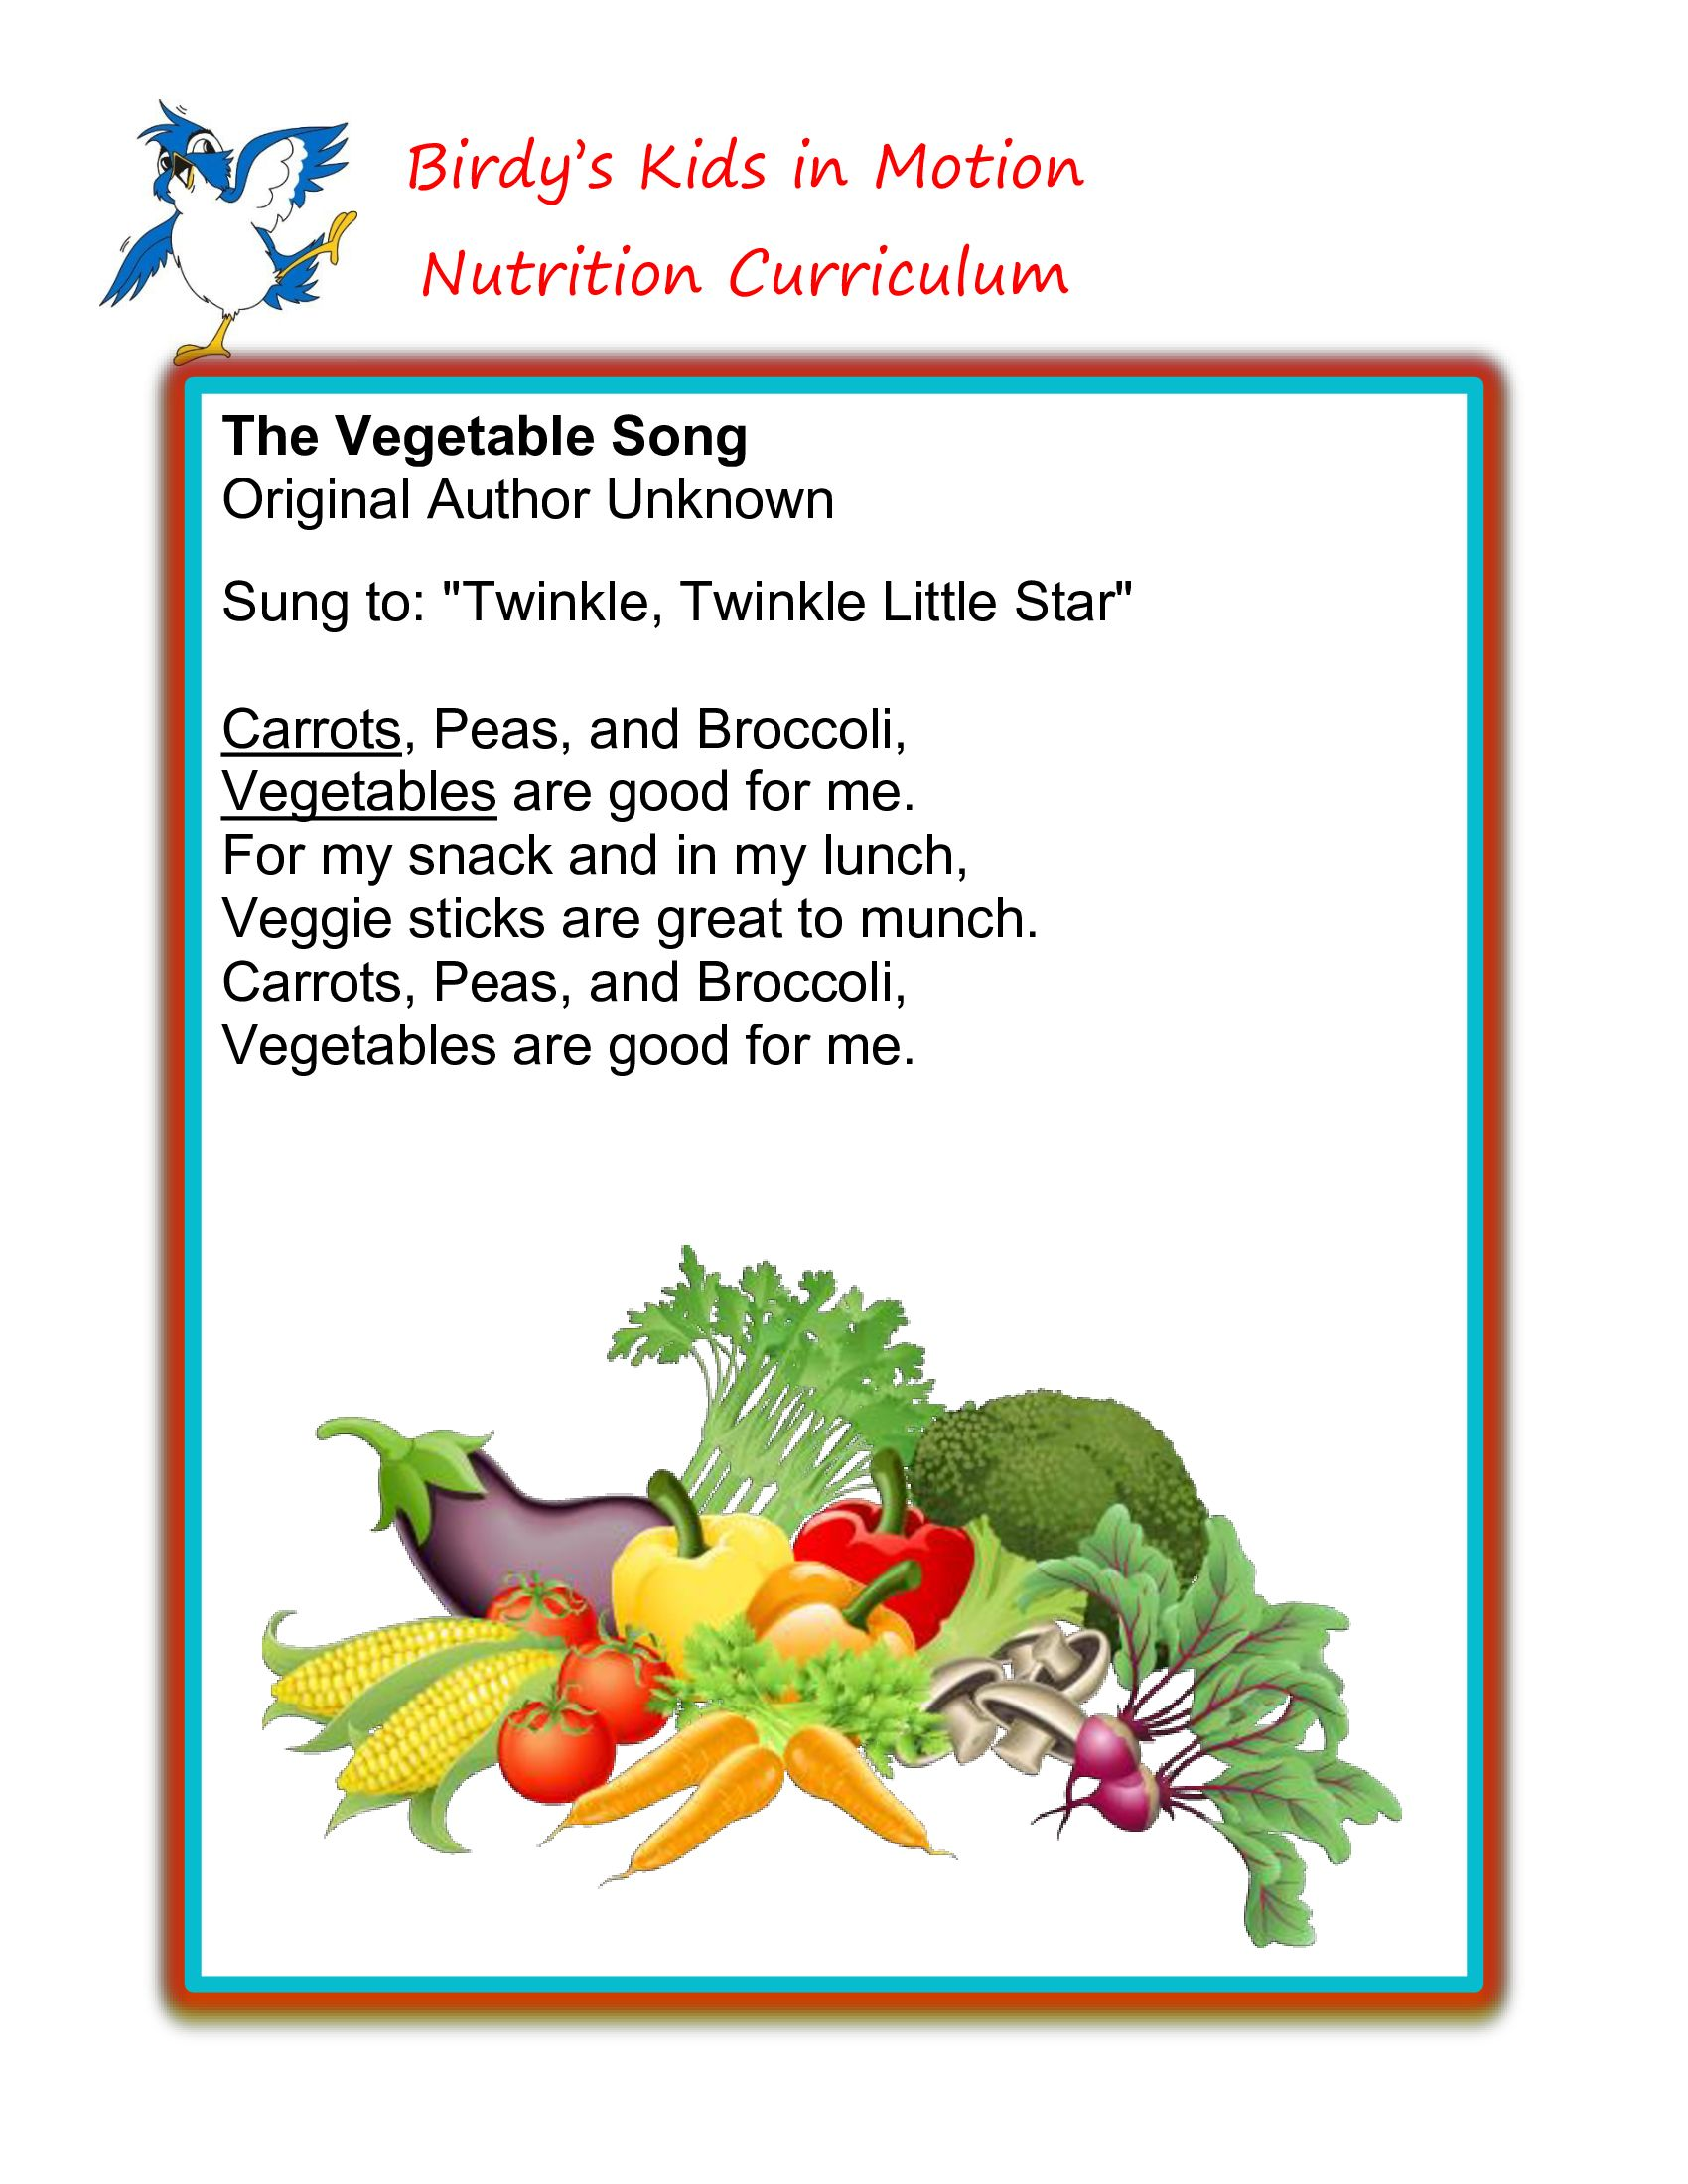 The Vegetable Song Birdyskidsinmotion